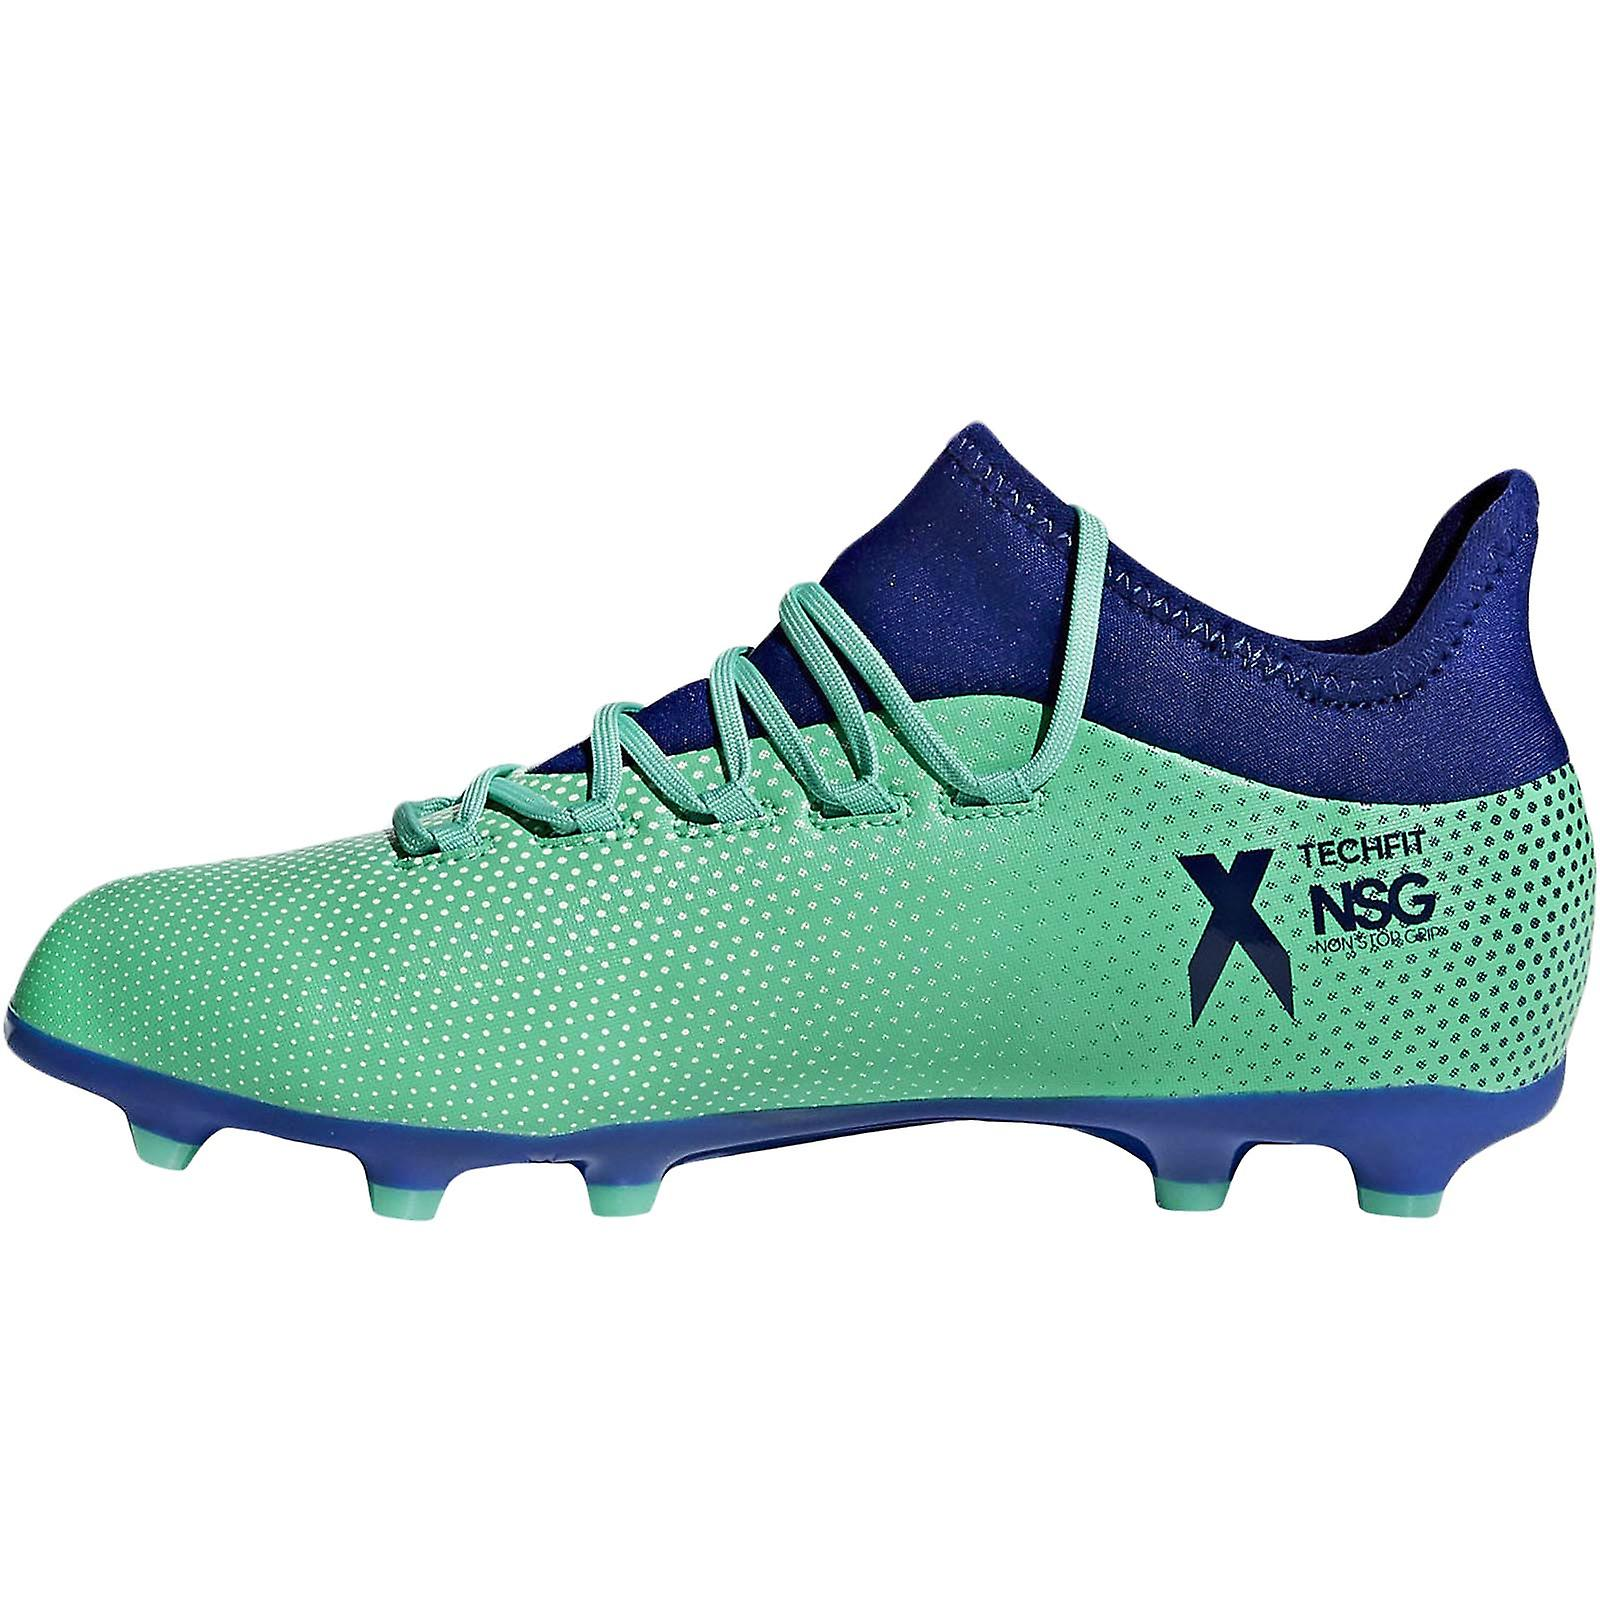 Adidas Performance Boys Juniors X 17.1 Fg Lace Up Football Boots - Aero Green